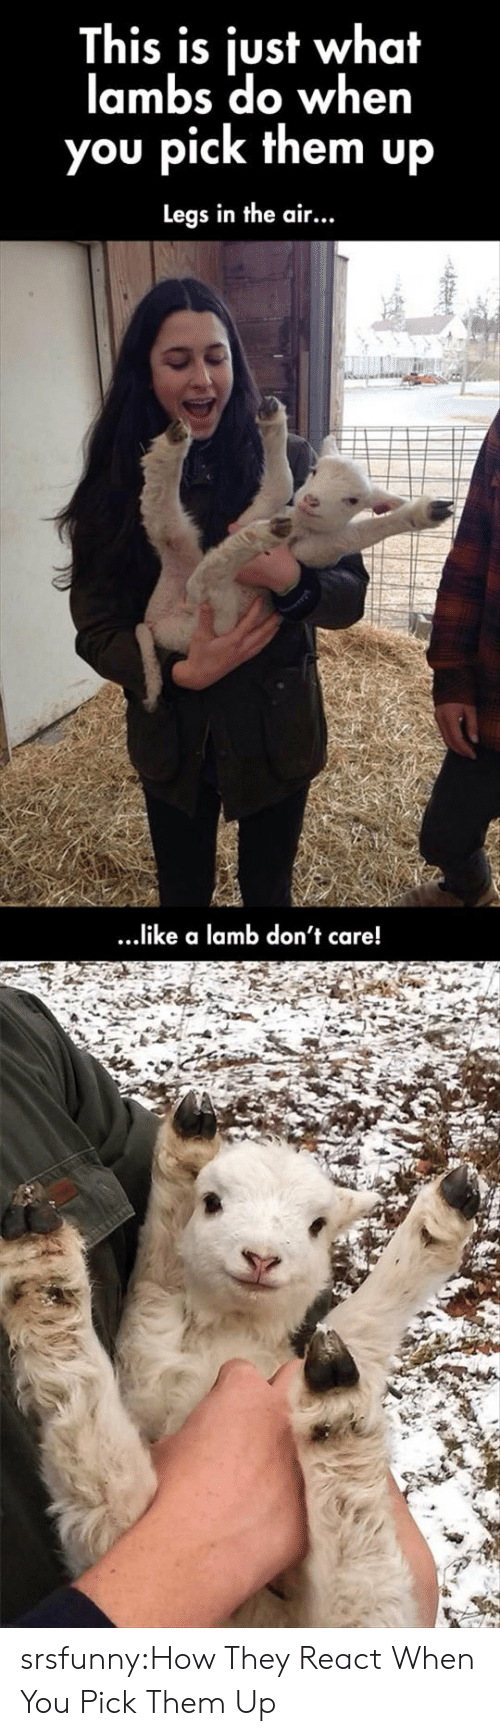 lambs: This is just what  lambs do when  you pick them up  Legs in the air...  ...ike a lamb don't care! srsfunny:How They React When You Pick Them Up